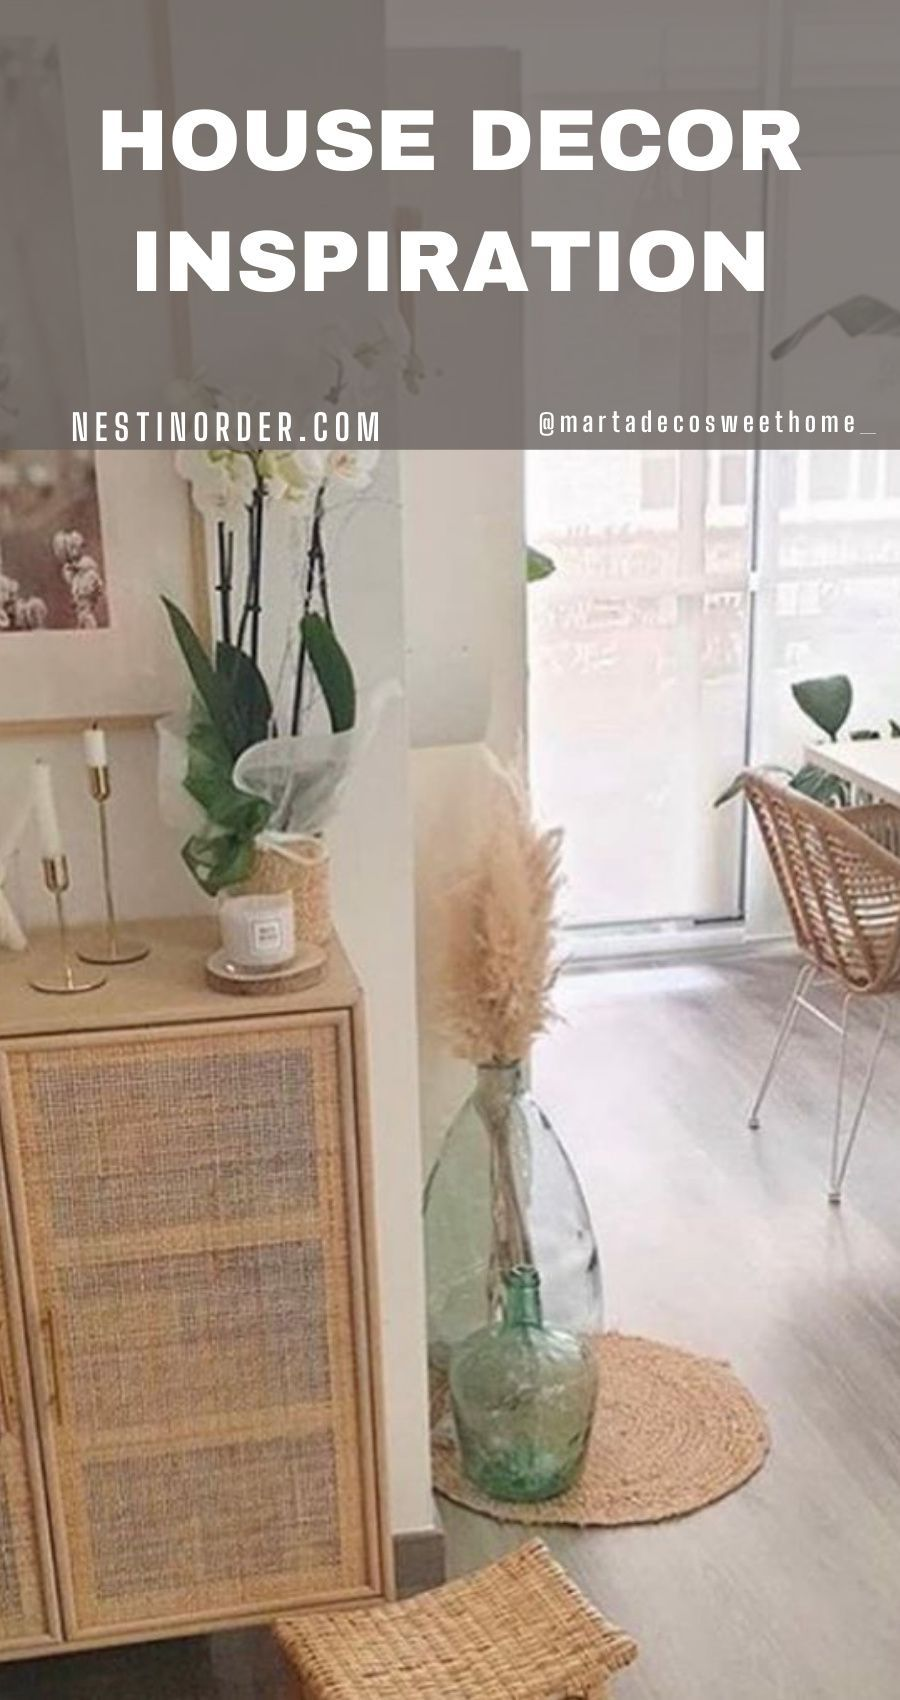 Make your home trendy and smart with our decoration ideas. Follow the link for more inspo! #homedecor #homedecorationideas #nestinoorder